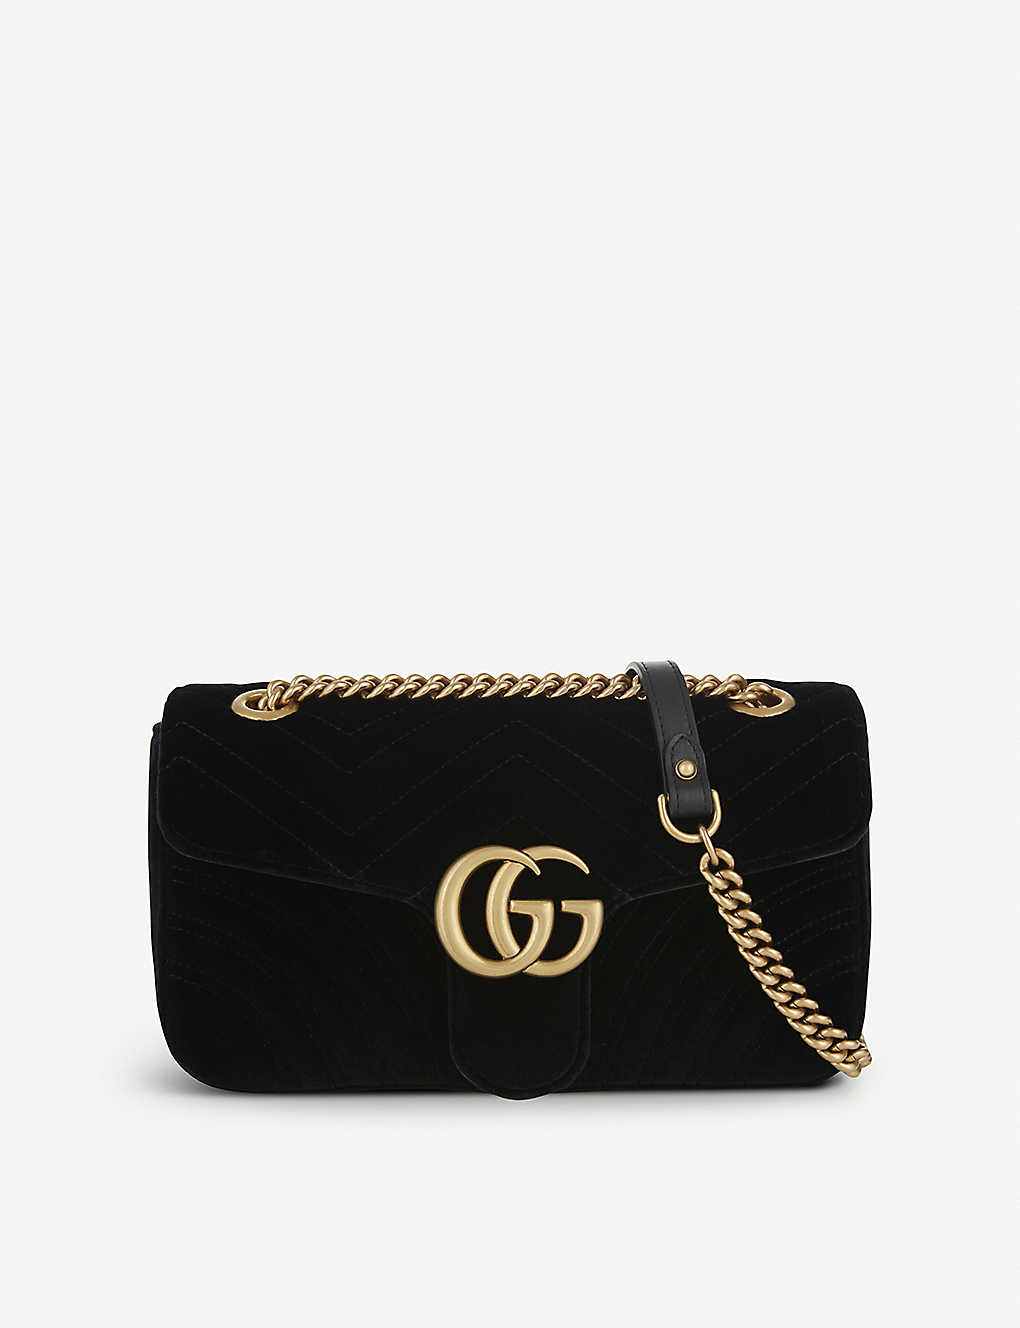 39092f676878 GUCCI - Marmont small velvet shoulder bag | Selfridges.com